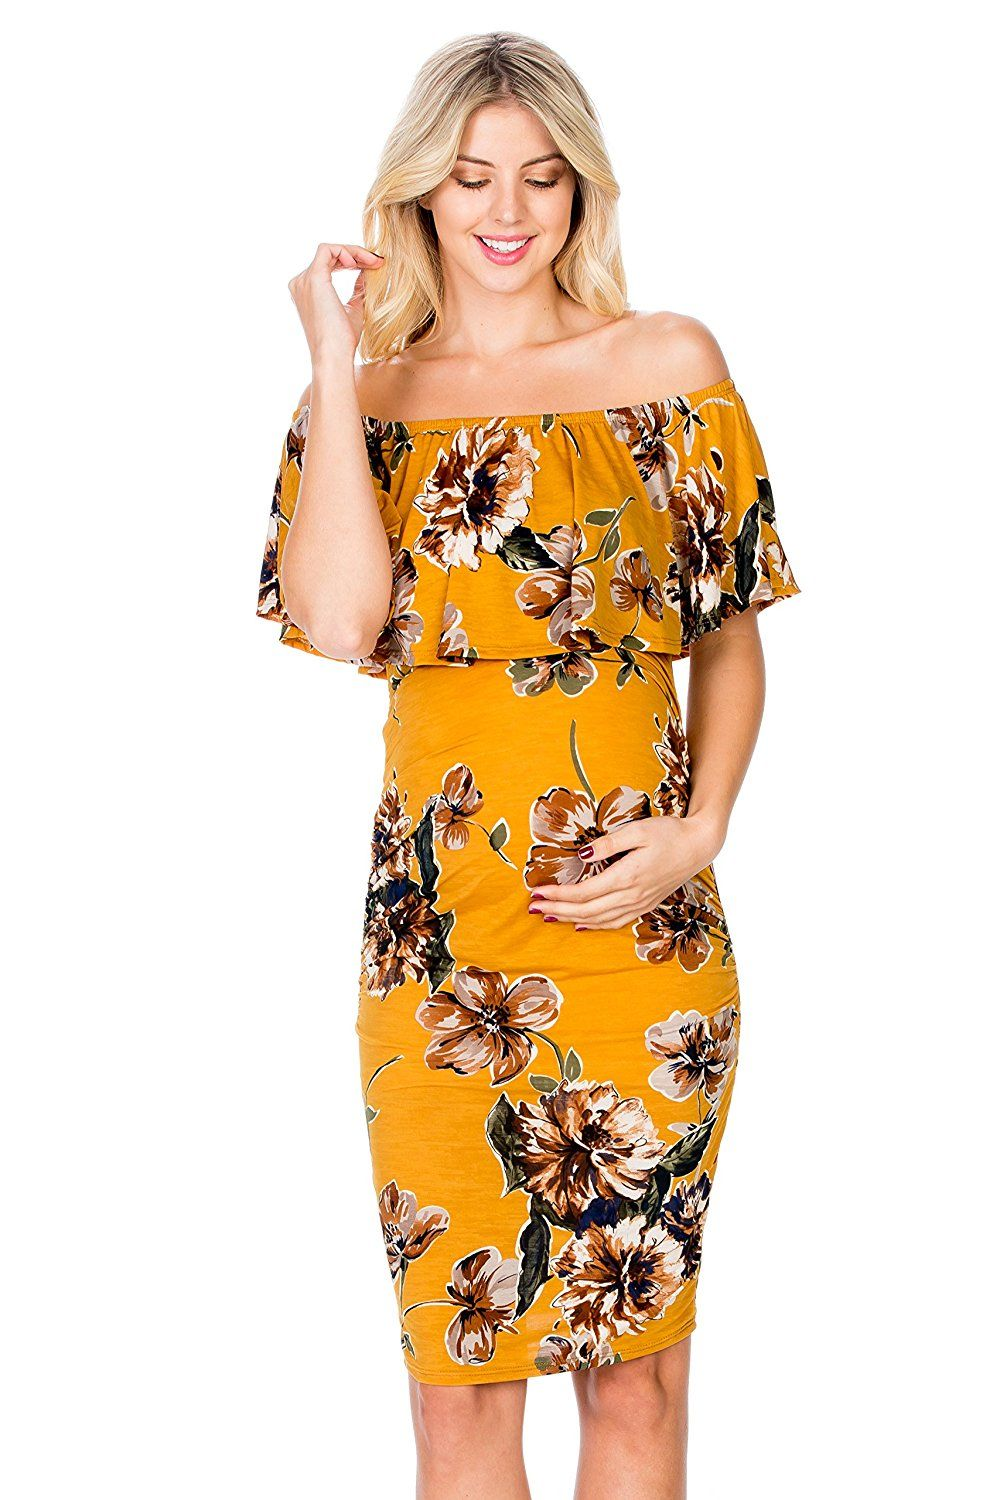 c620a8e89d81b My Bump Women's Ruffle Off-Shoulder Maternity Dress W/Side Sharing(Made in  USA) (X-Large, Mustard#3 Flower) at Amazon Women's Clothing store: